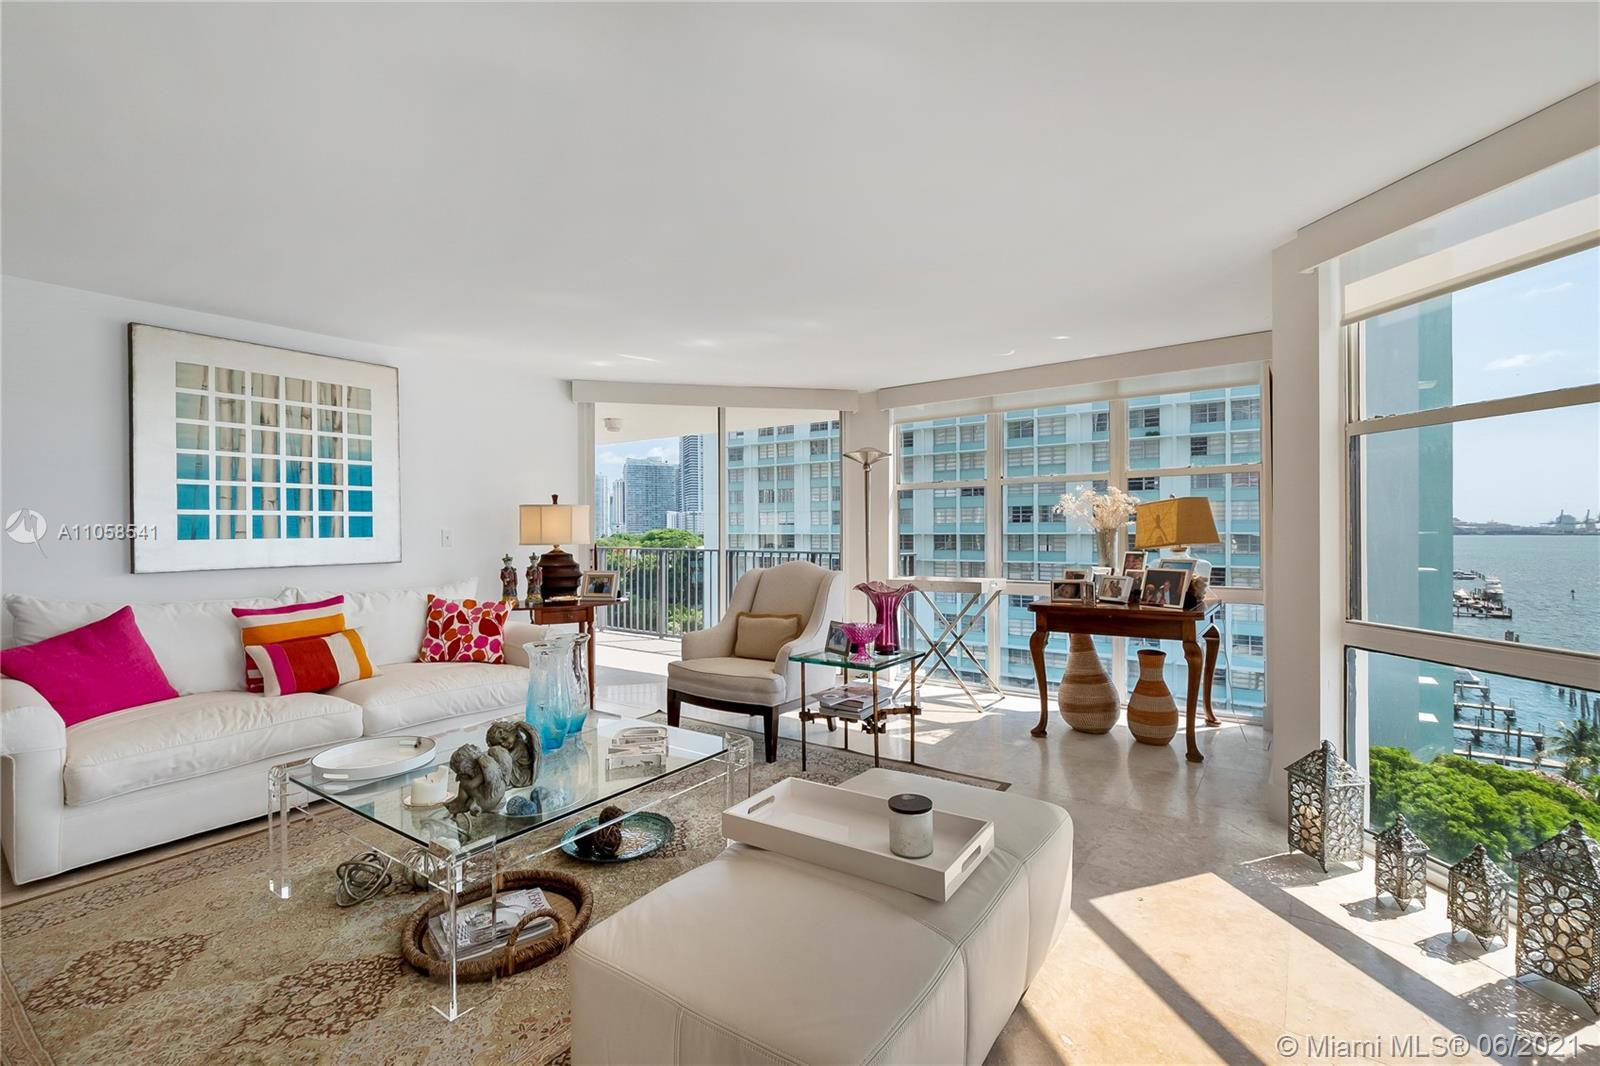 Gorgeous and bright corner unit, best line in the building. All rooms have generous windows allowing